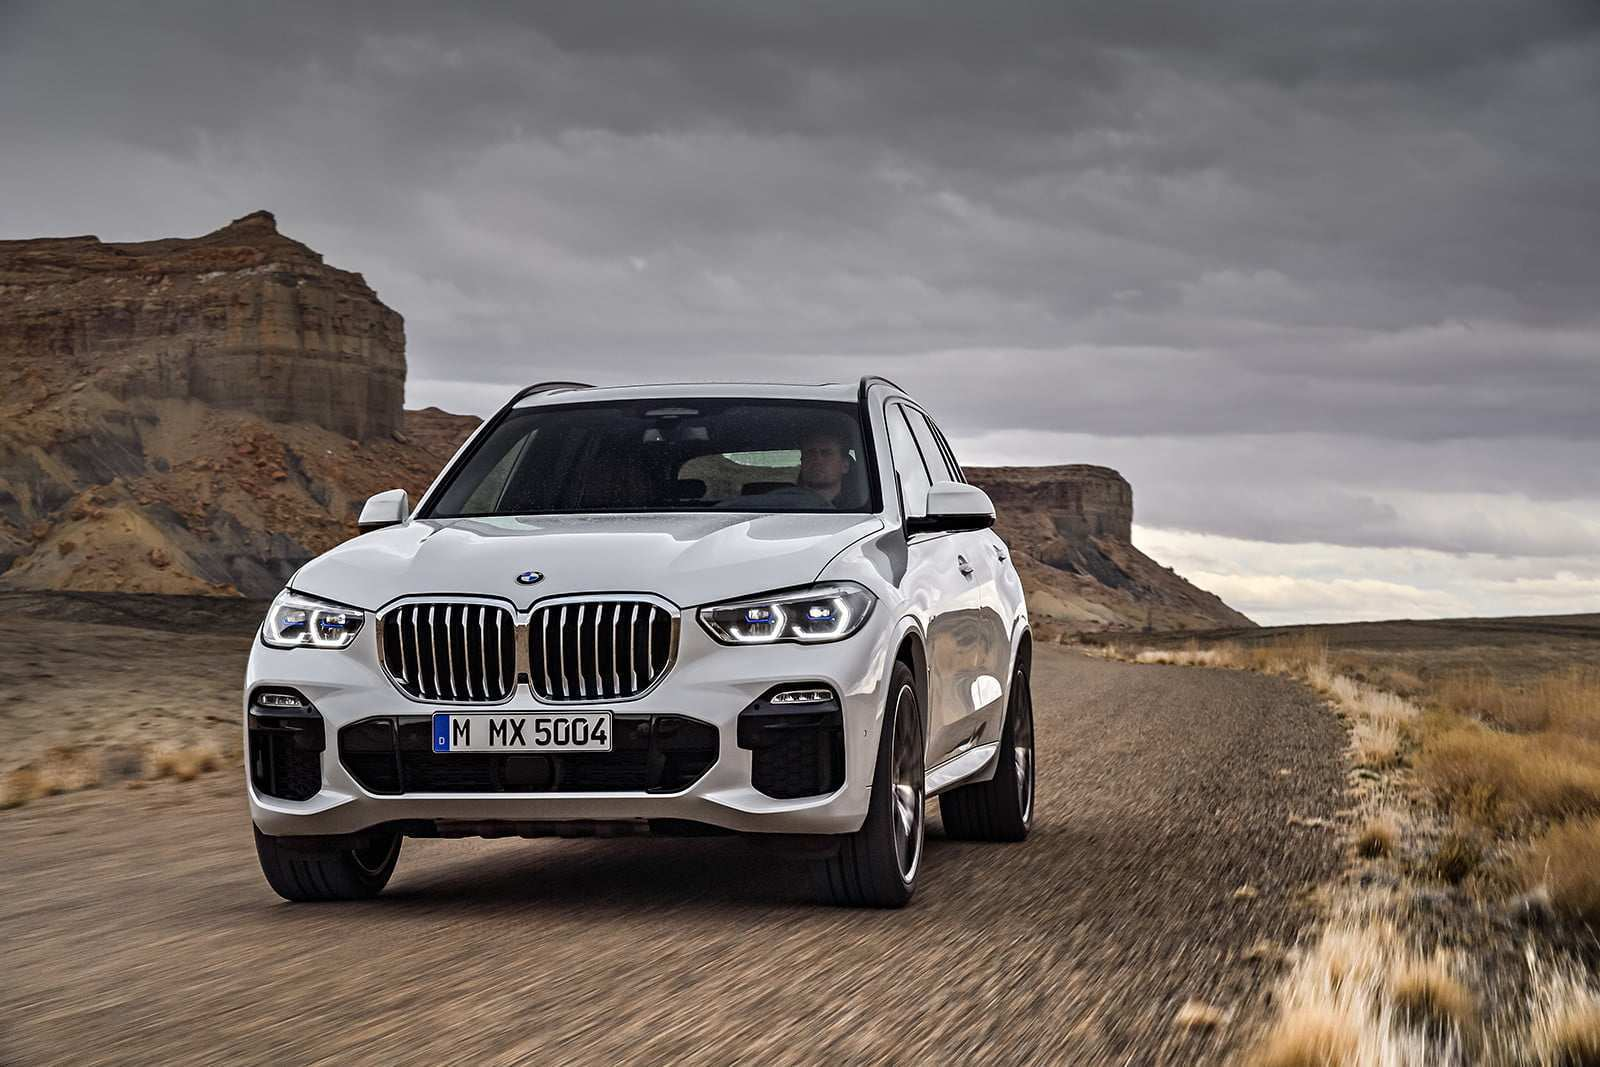 55 Great 2019 Bmw Suv Images with 2019 Bmw Suv